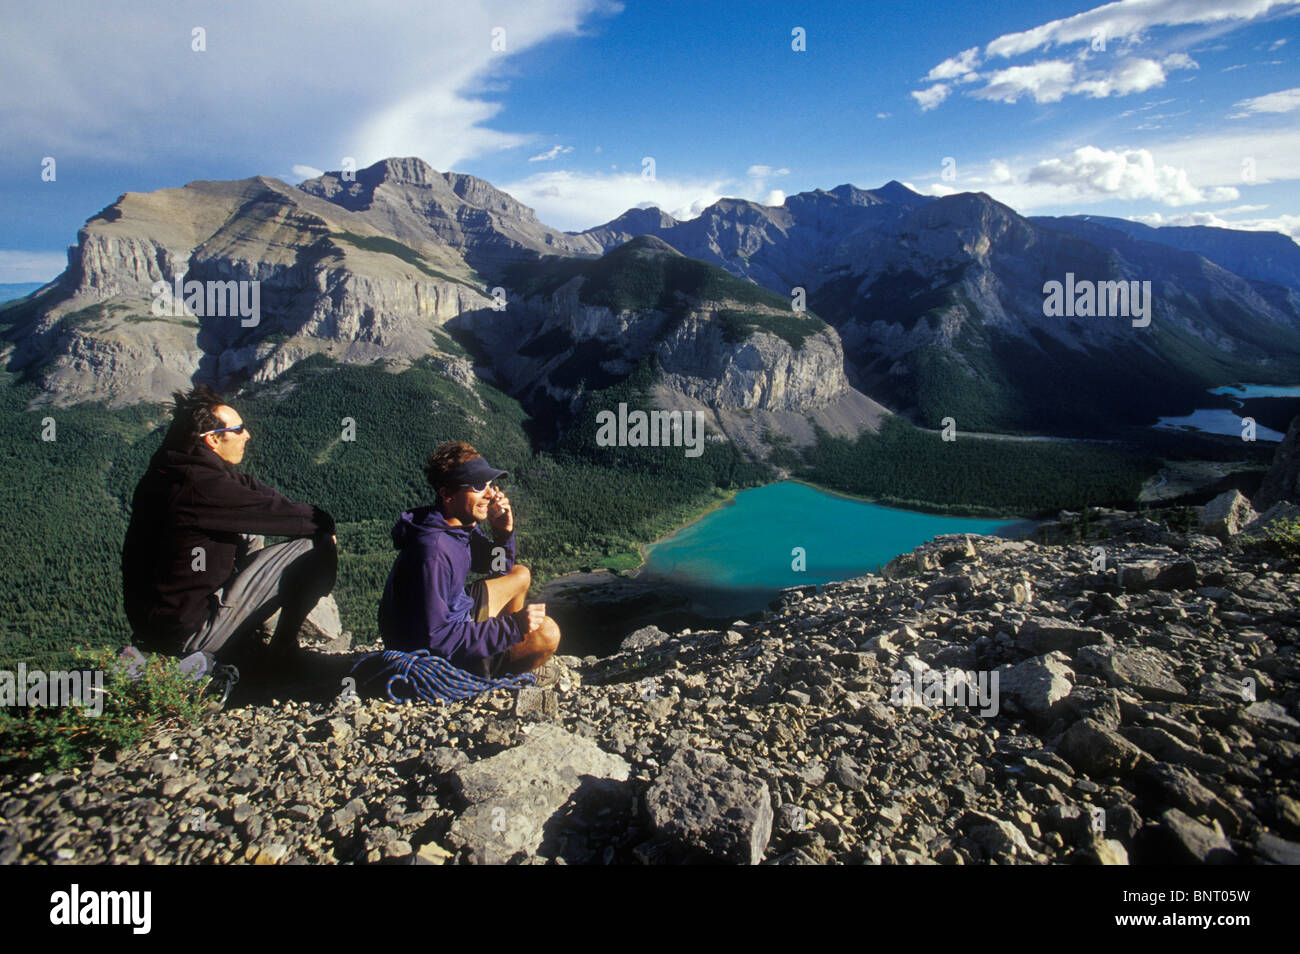 Two climbers stay in touch by talking on a cell phone in the mountains. - Stock Image